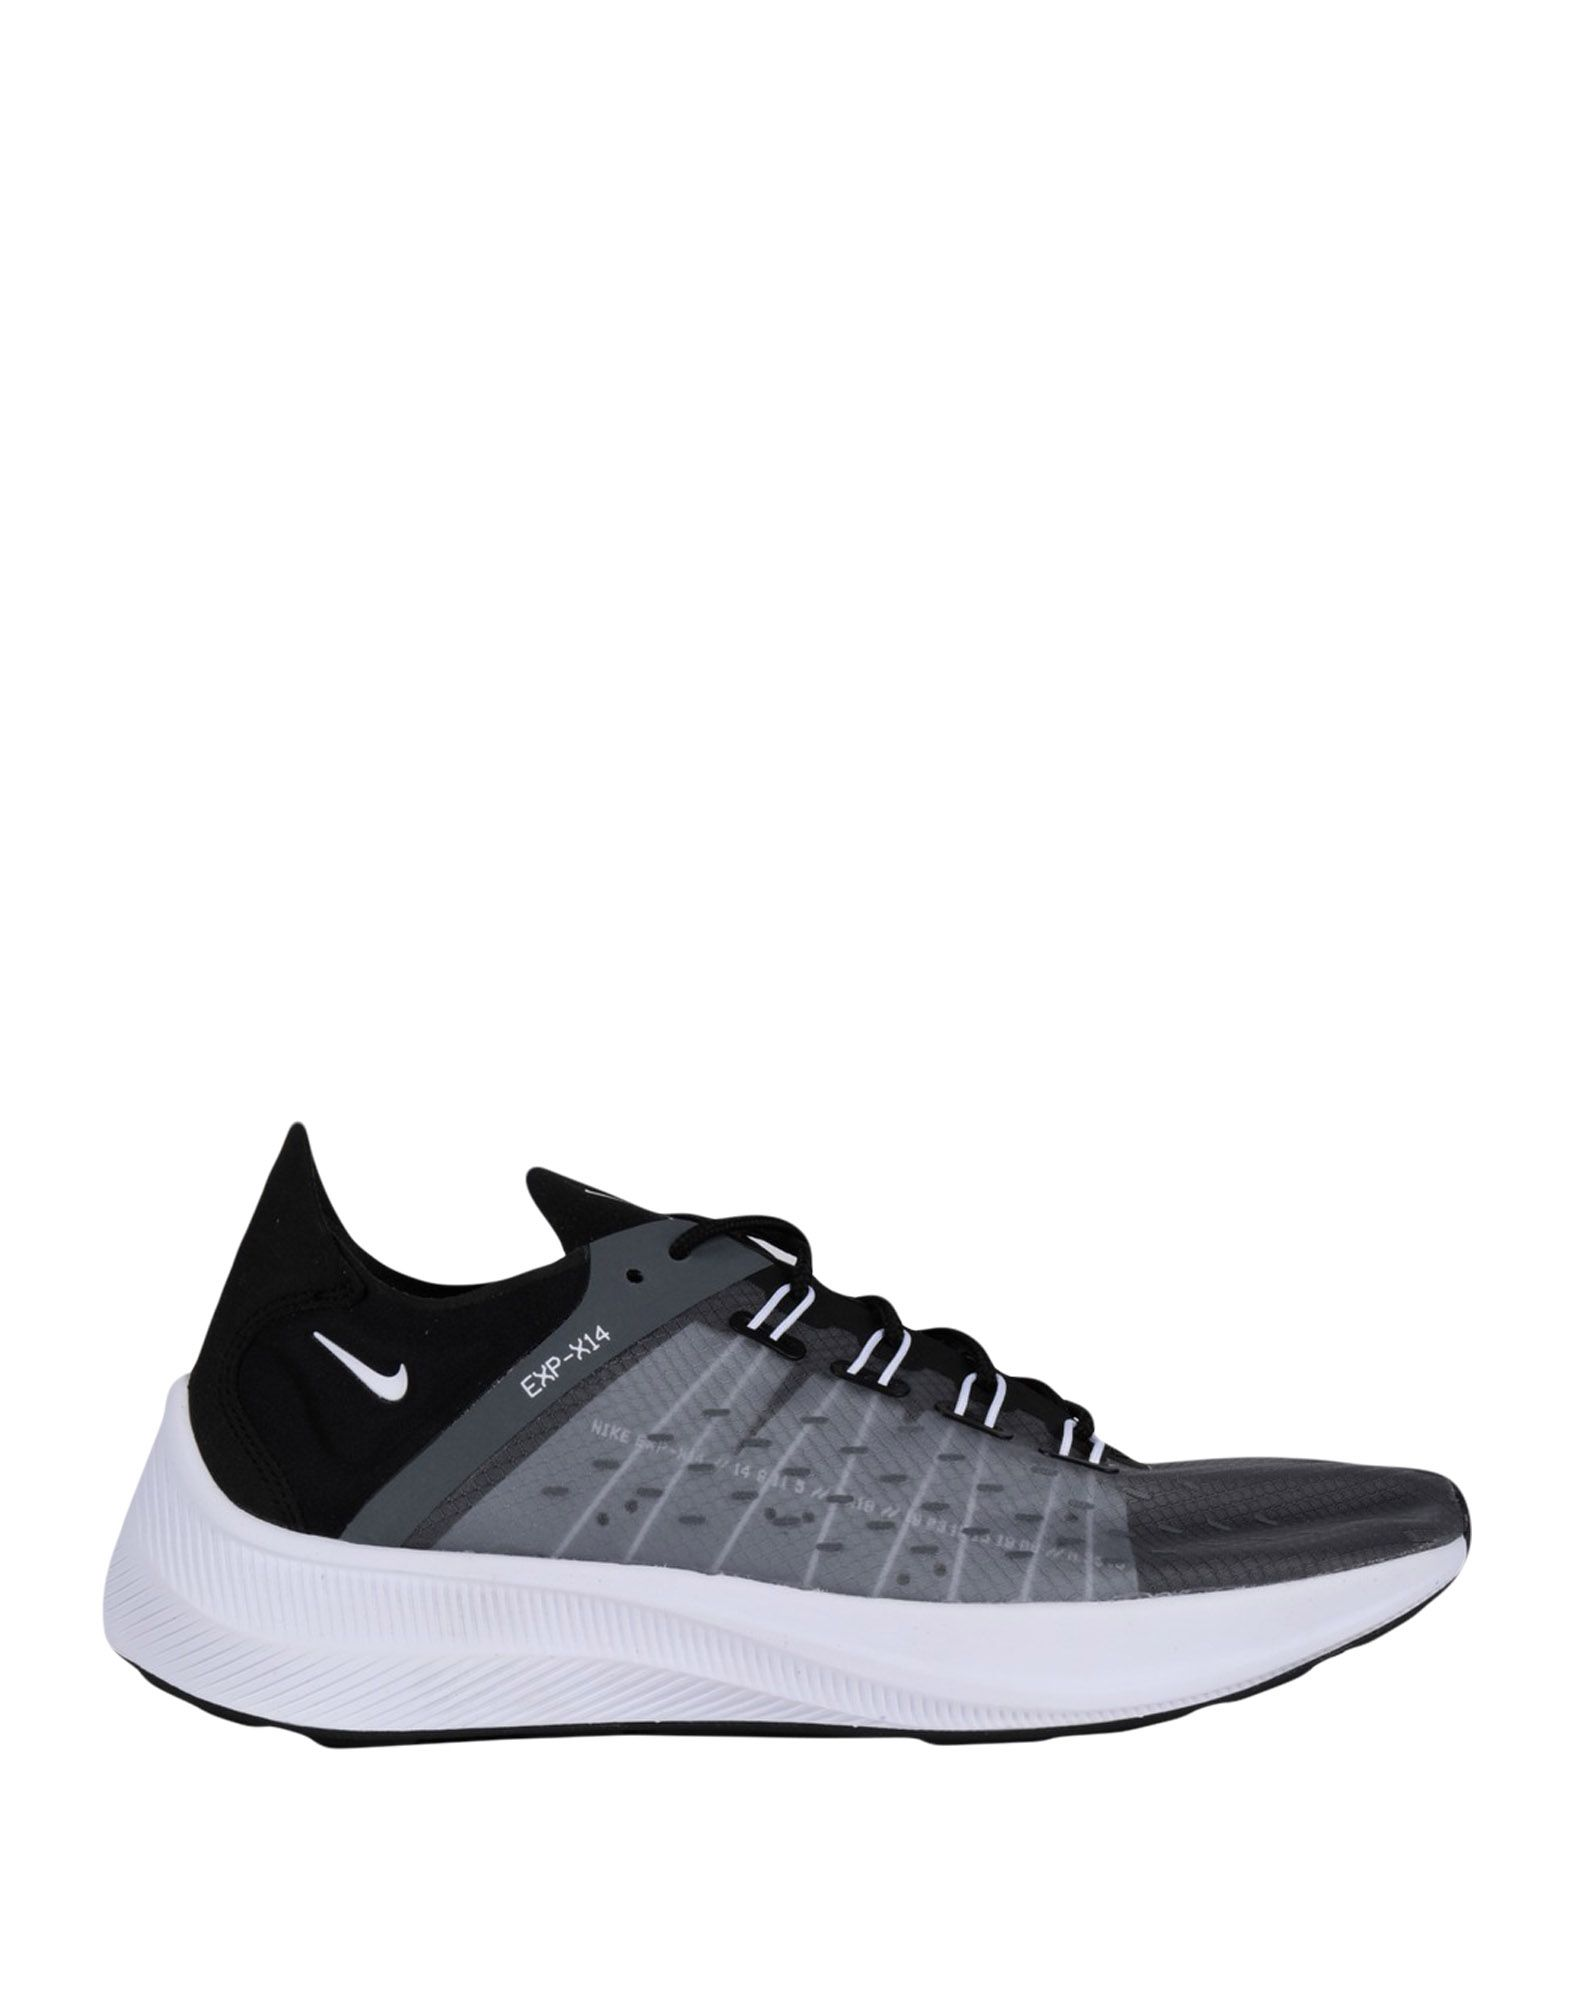 Stilvolle billige Schuhe Nike Exp 11543361OF